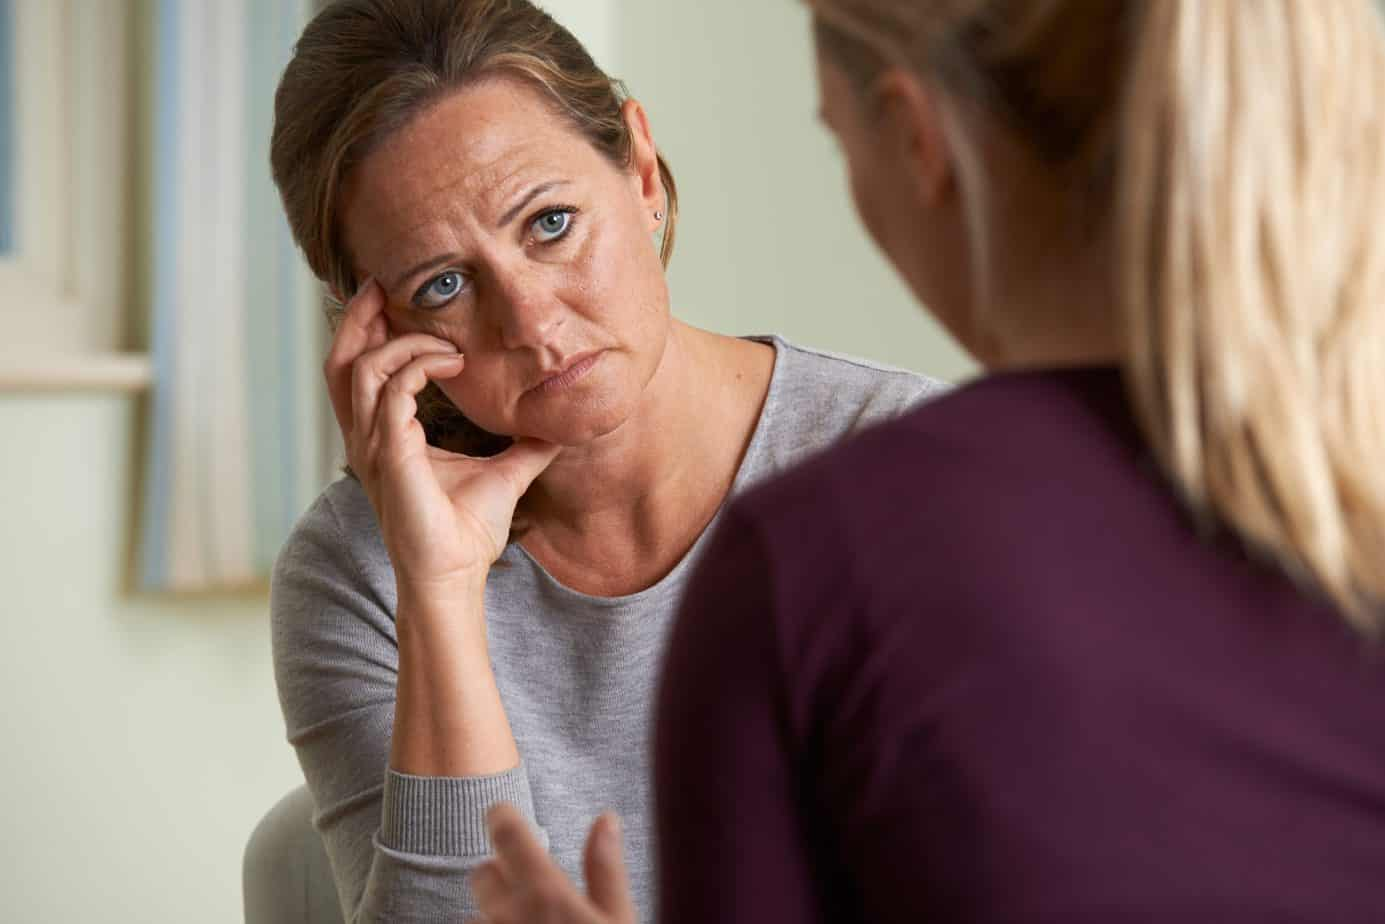 Depressed woman having counselling